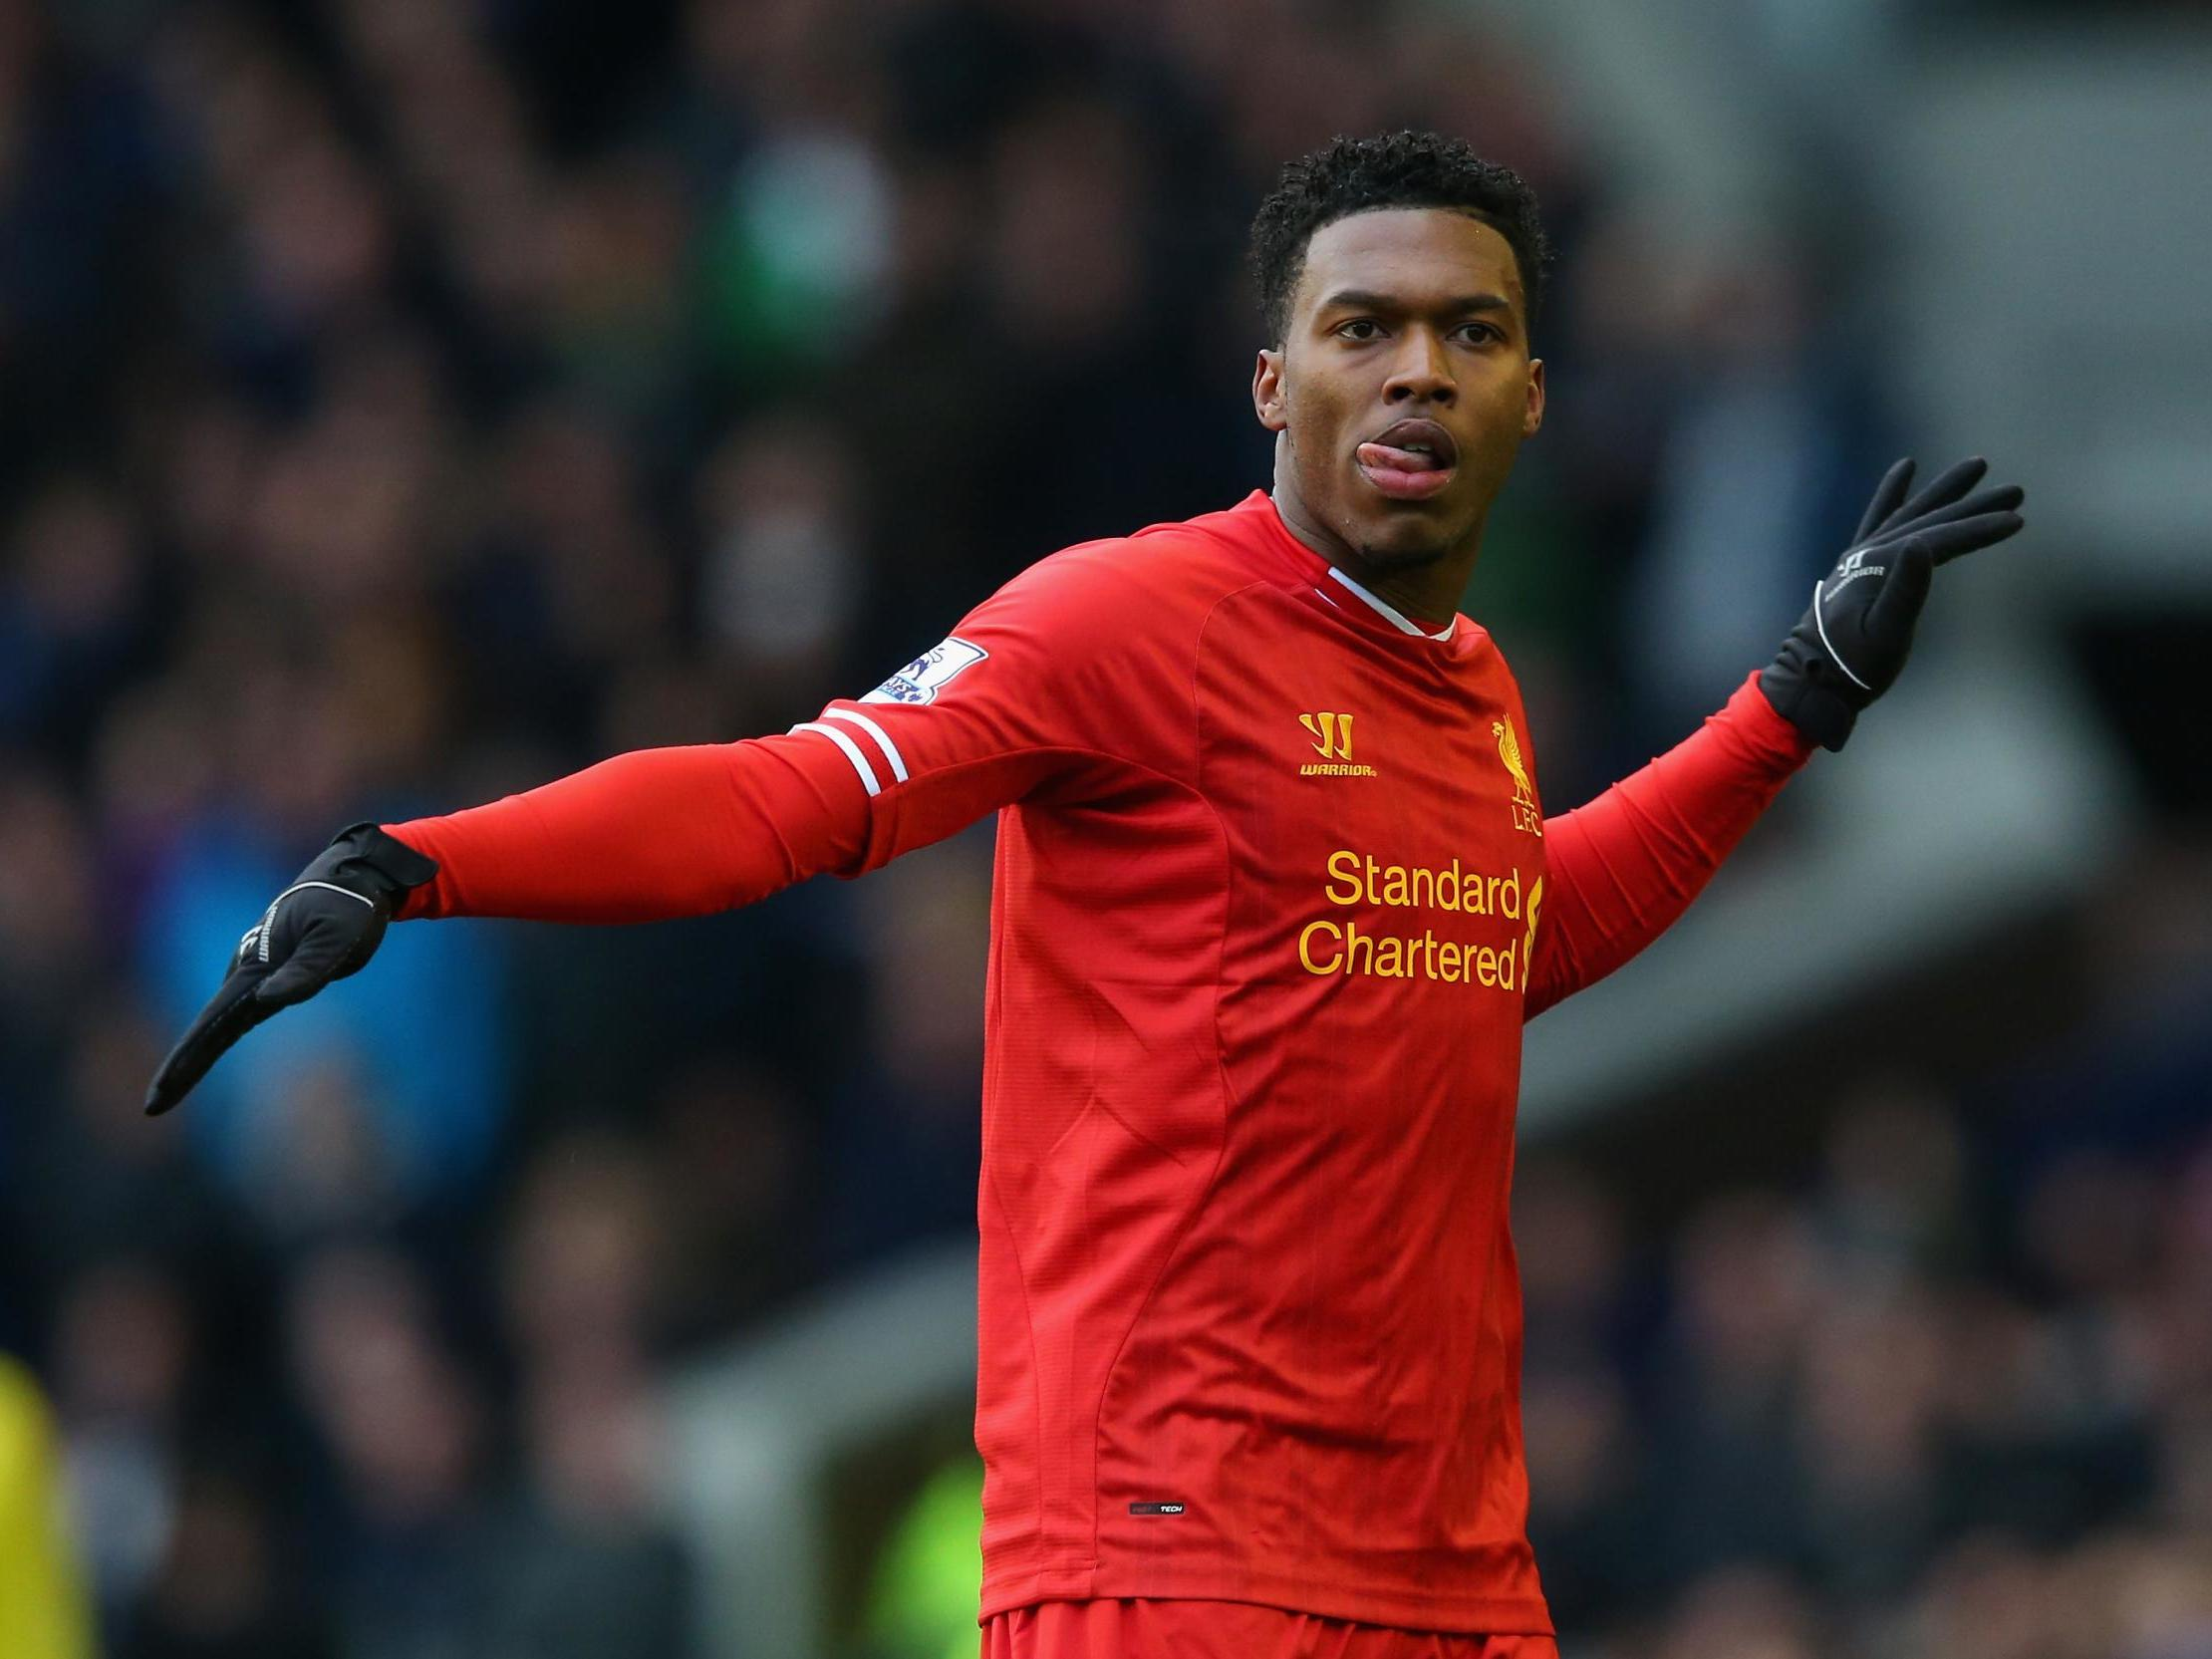 All is not lost for Daniel Sturridge, Liverpool's 'franchise player' who got away - The Independent